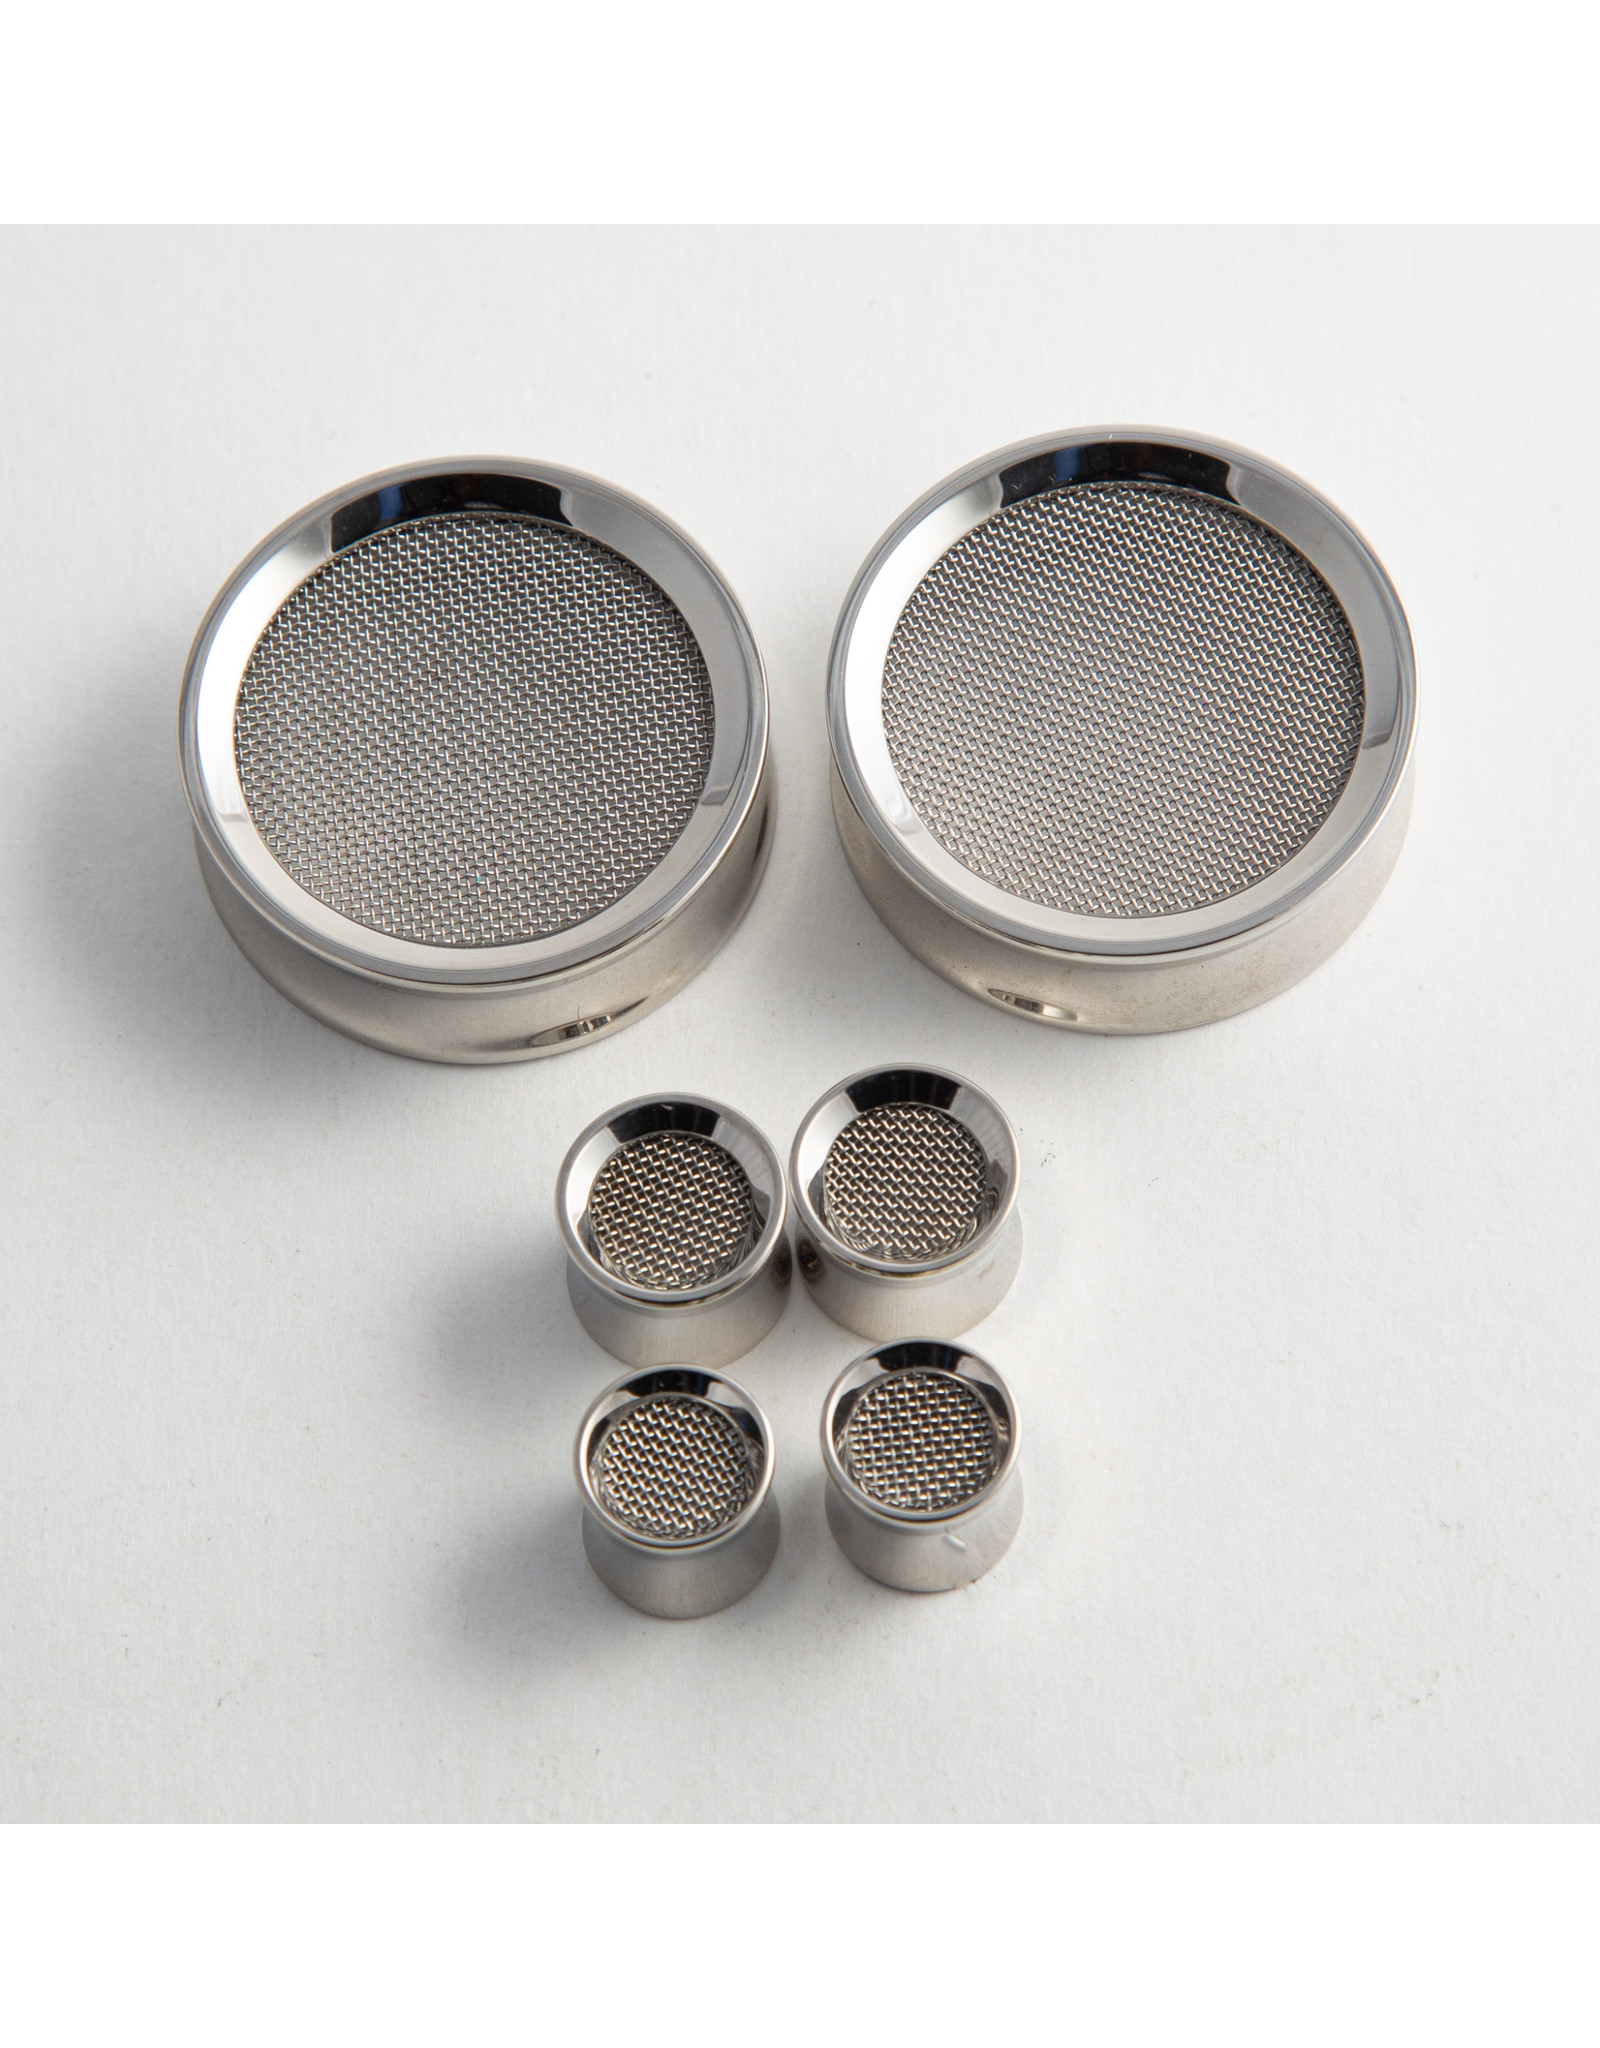 Reign Custom Design Reign 1/2 steel Screens double flared eyelets